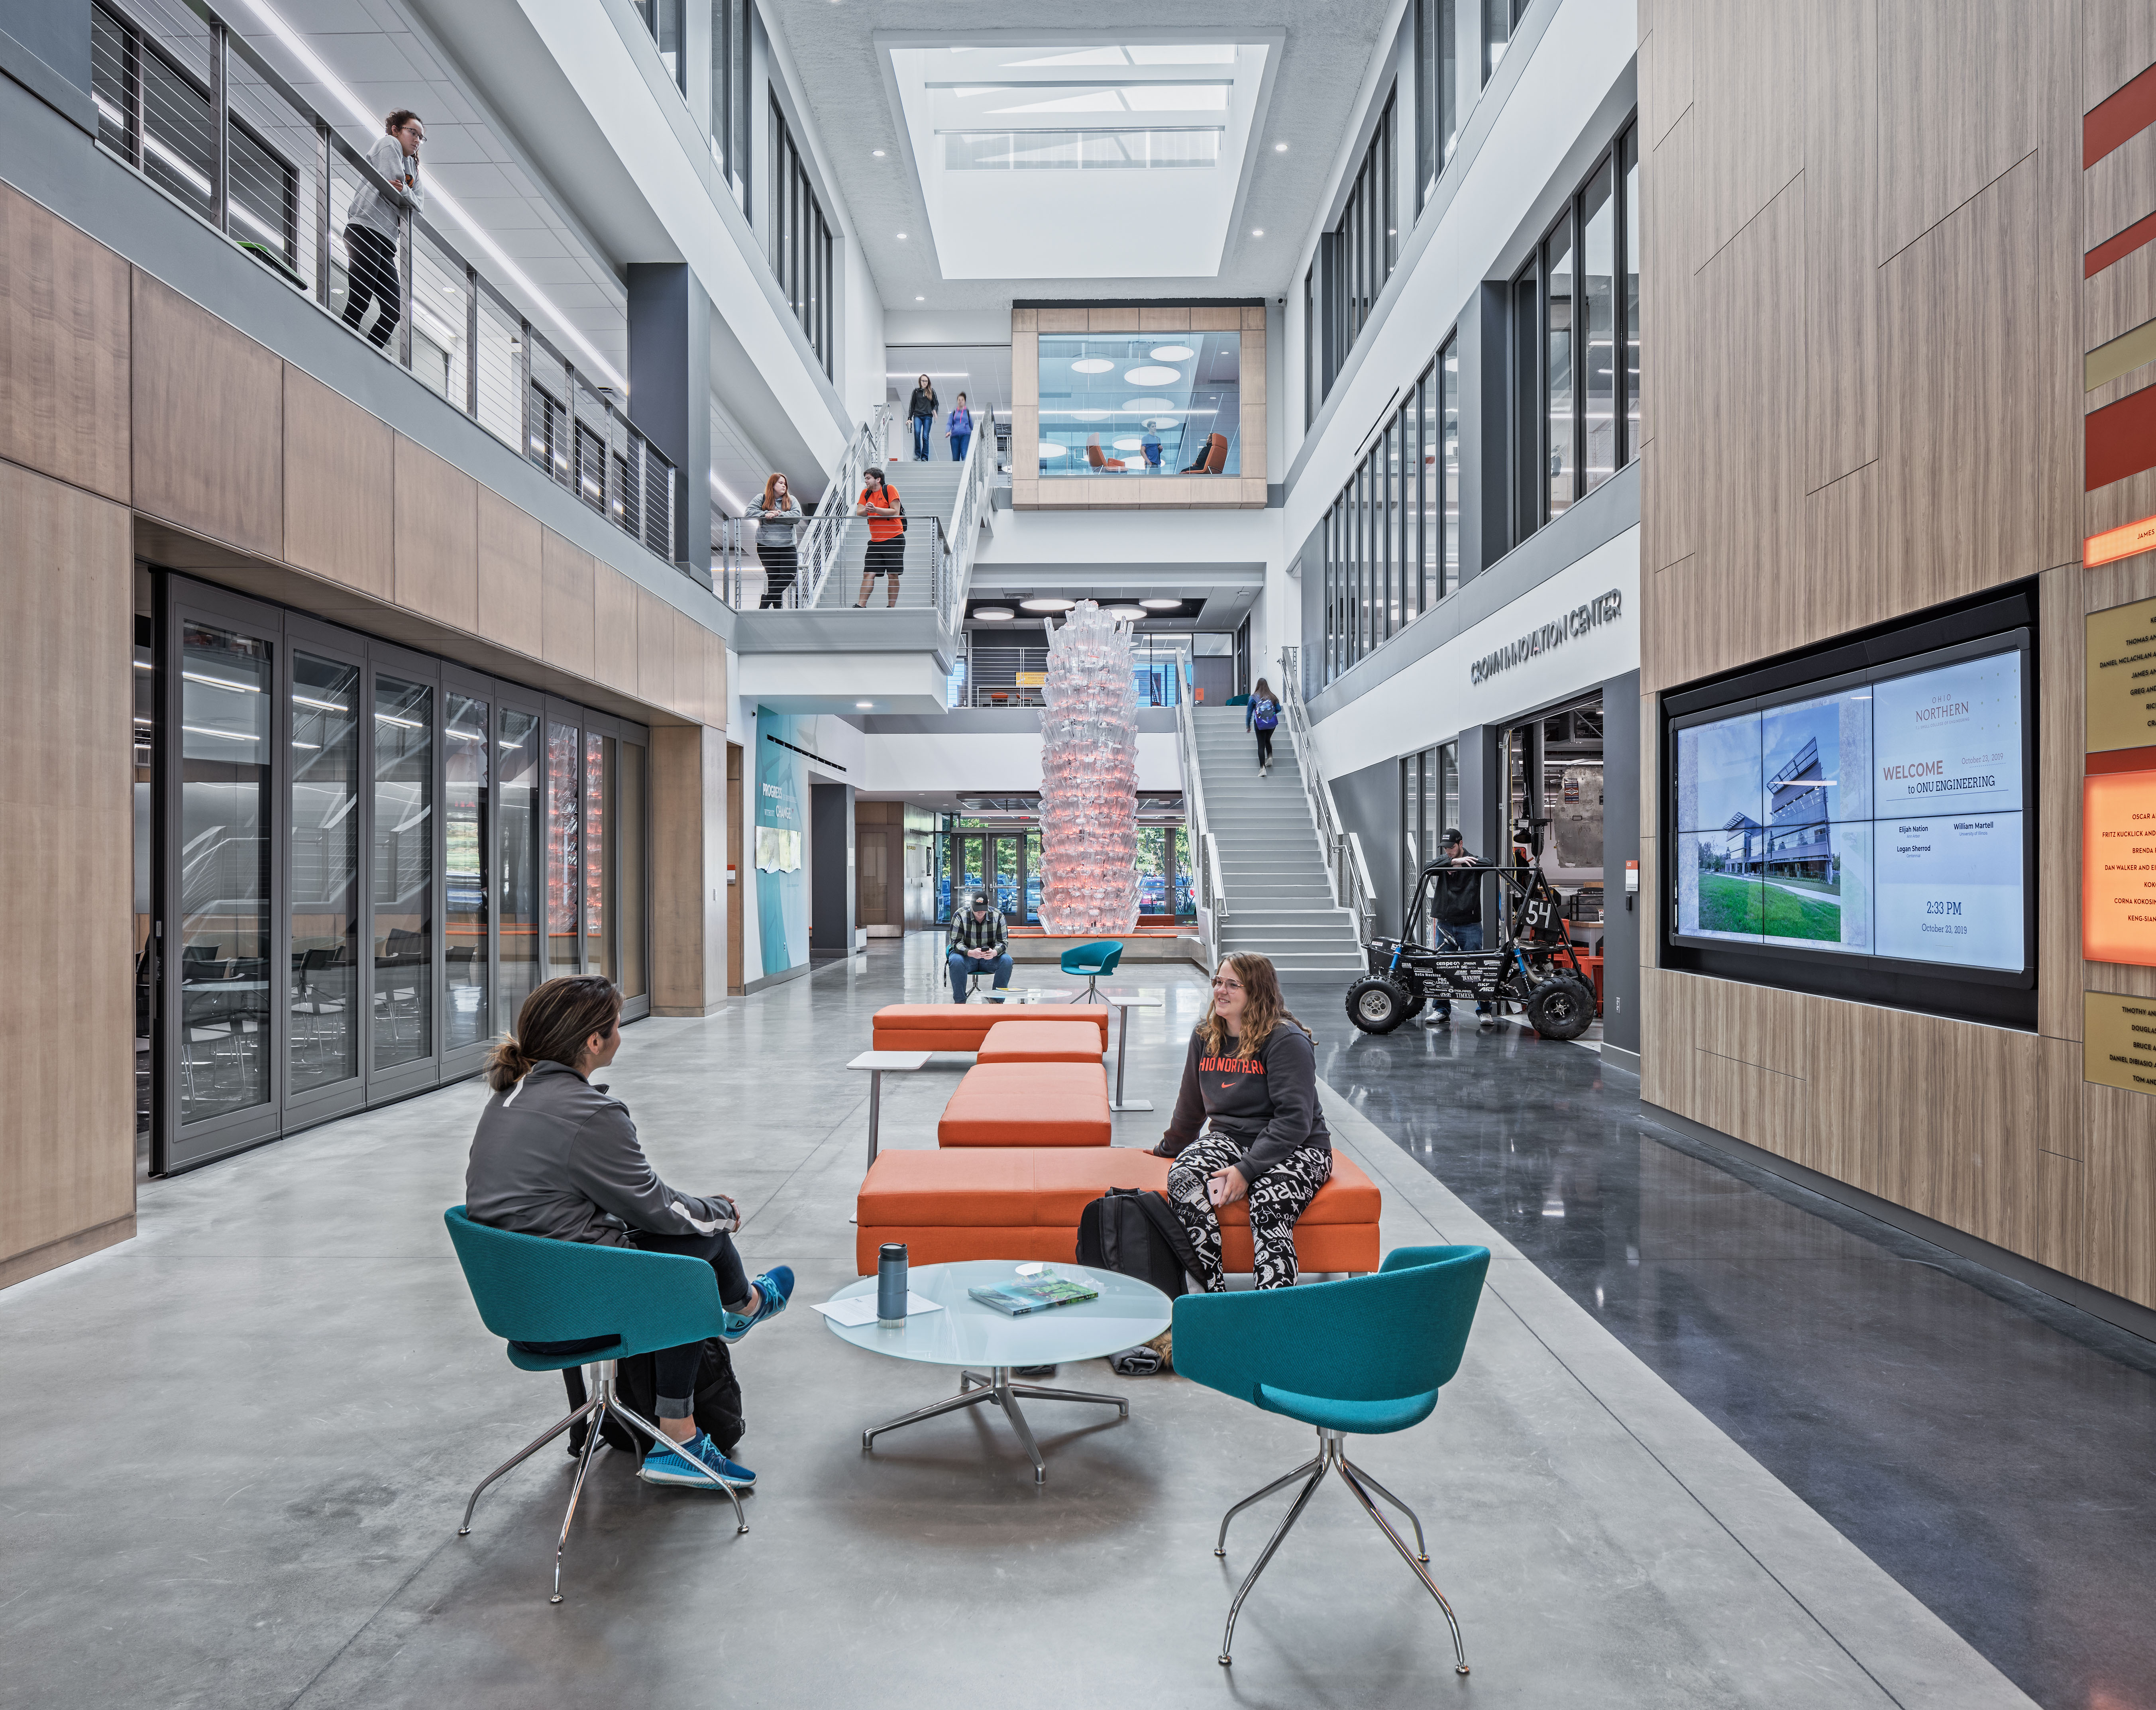 Students collaborate inside the atrium